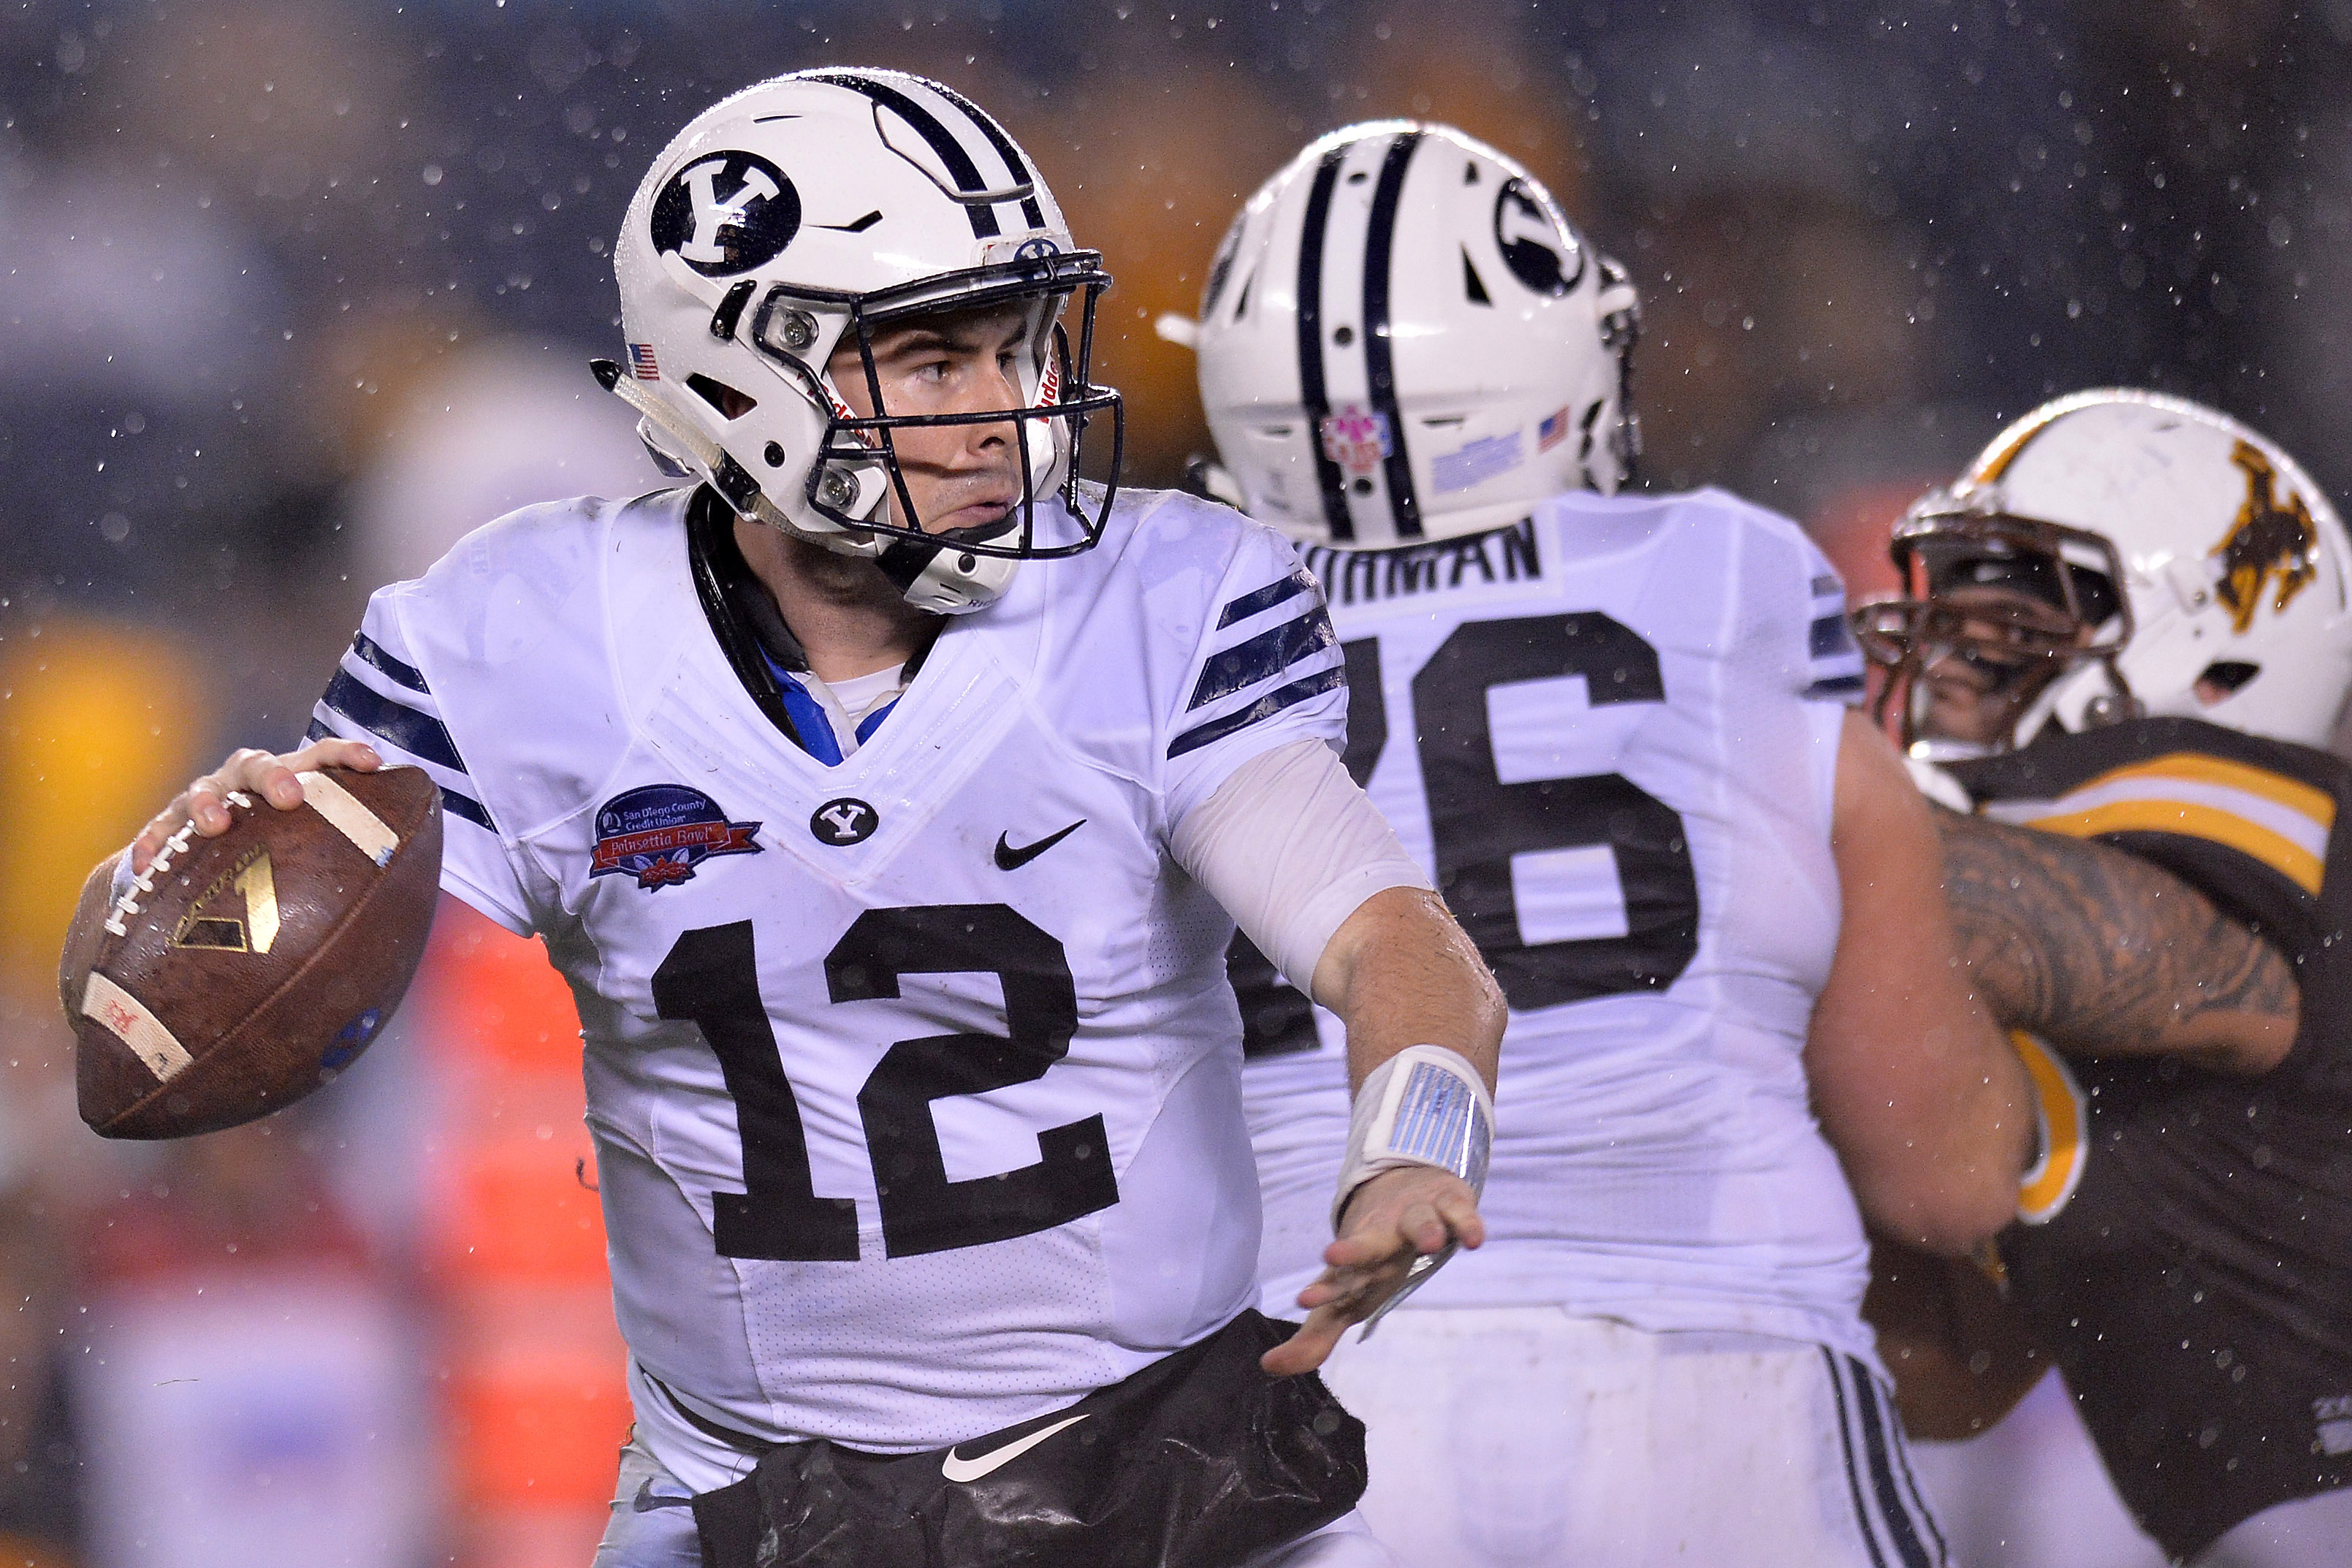 BYU football: Tanner Mangum shows courage in social media ...